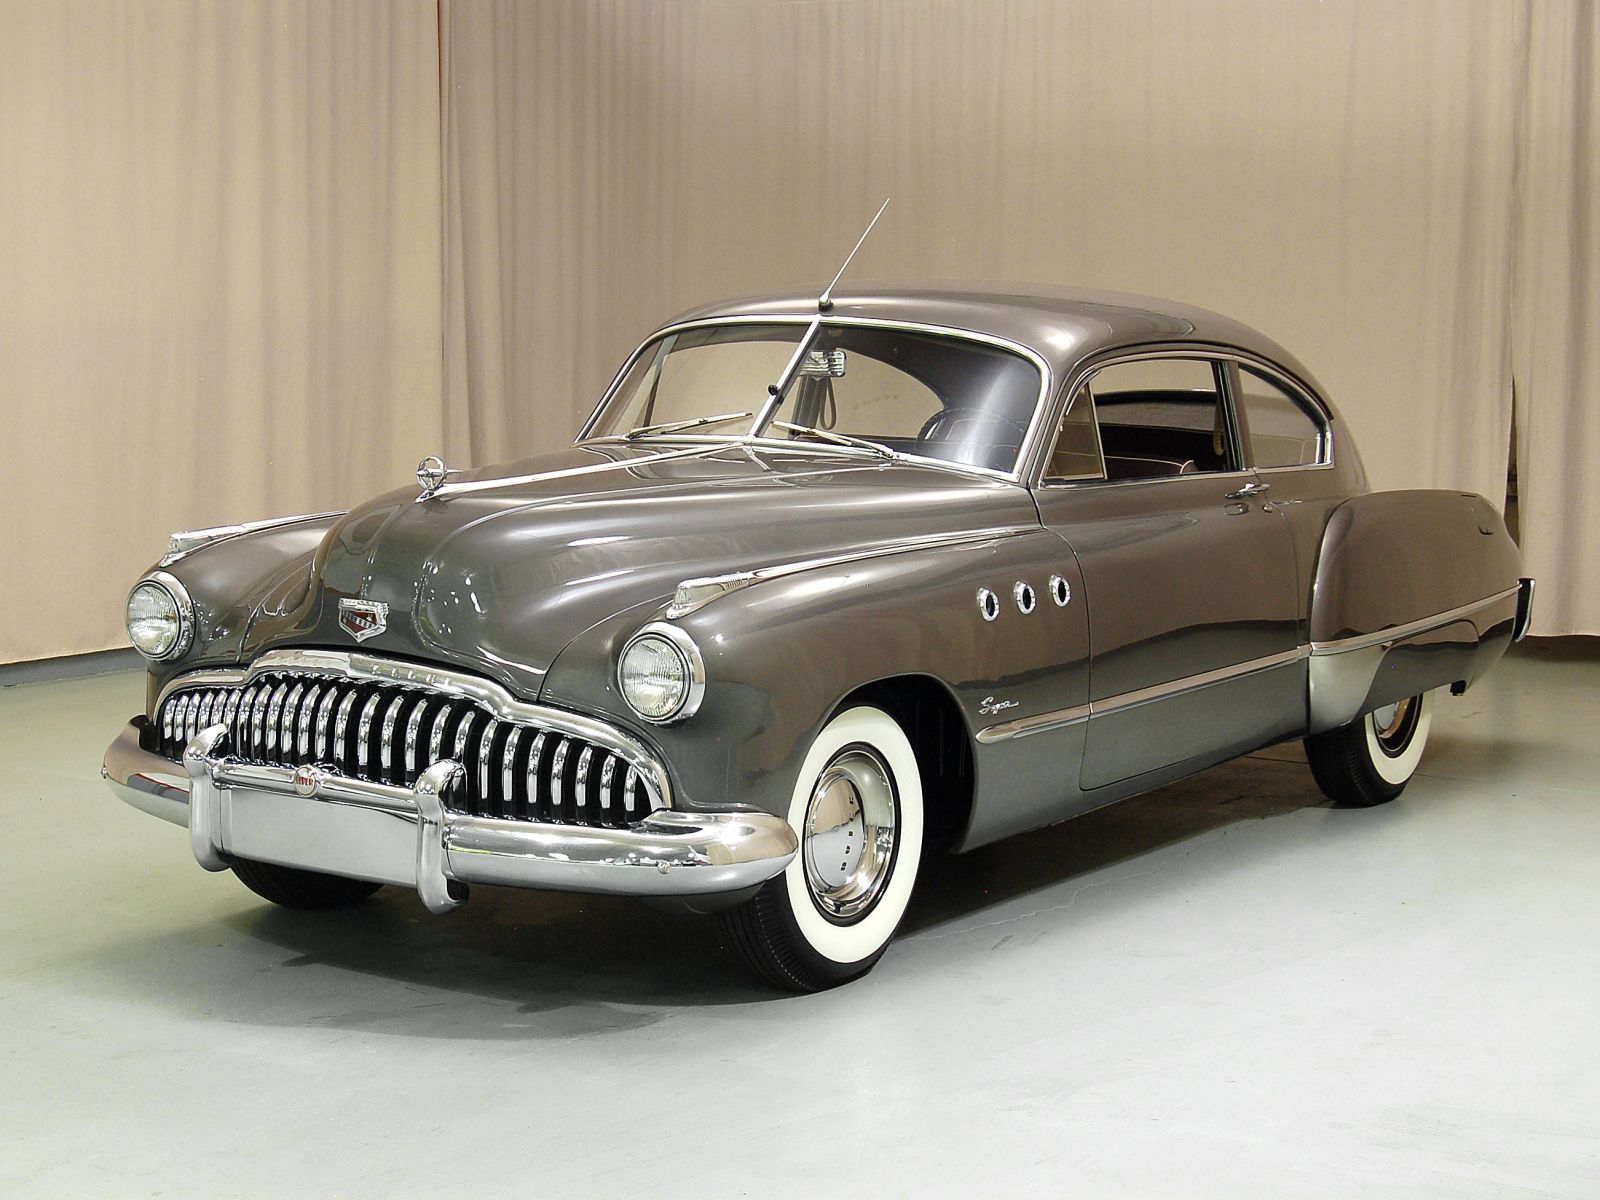 1949 buick sedanette hyman ltd classic cars. Black Bedroom Furniture Sets. Home Design Ideas